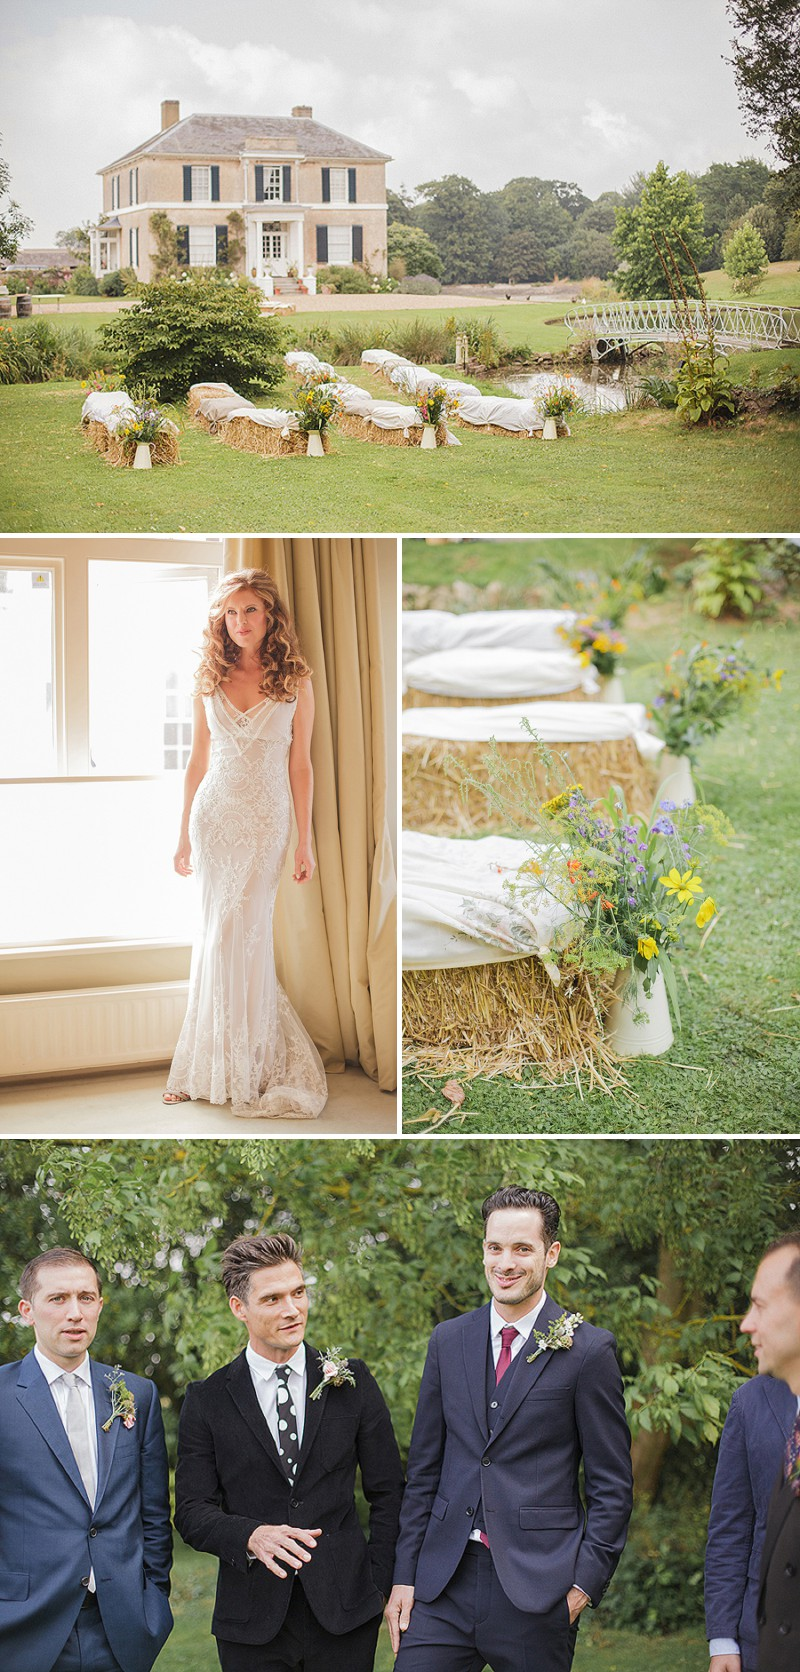 A Pre Raphaelite Inspired Wedding At Preston Court With A John Zimmerman Bespoke Dress And Bridesmaids In Vintage Nightgowns By Sarah Gawler Photography._0001